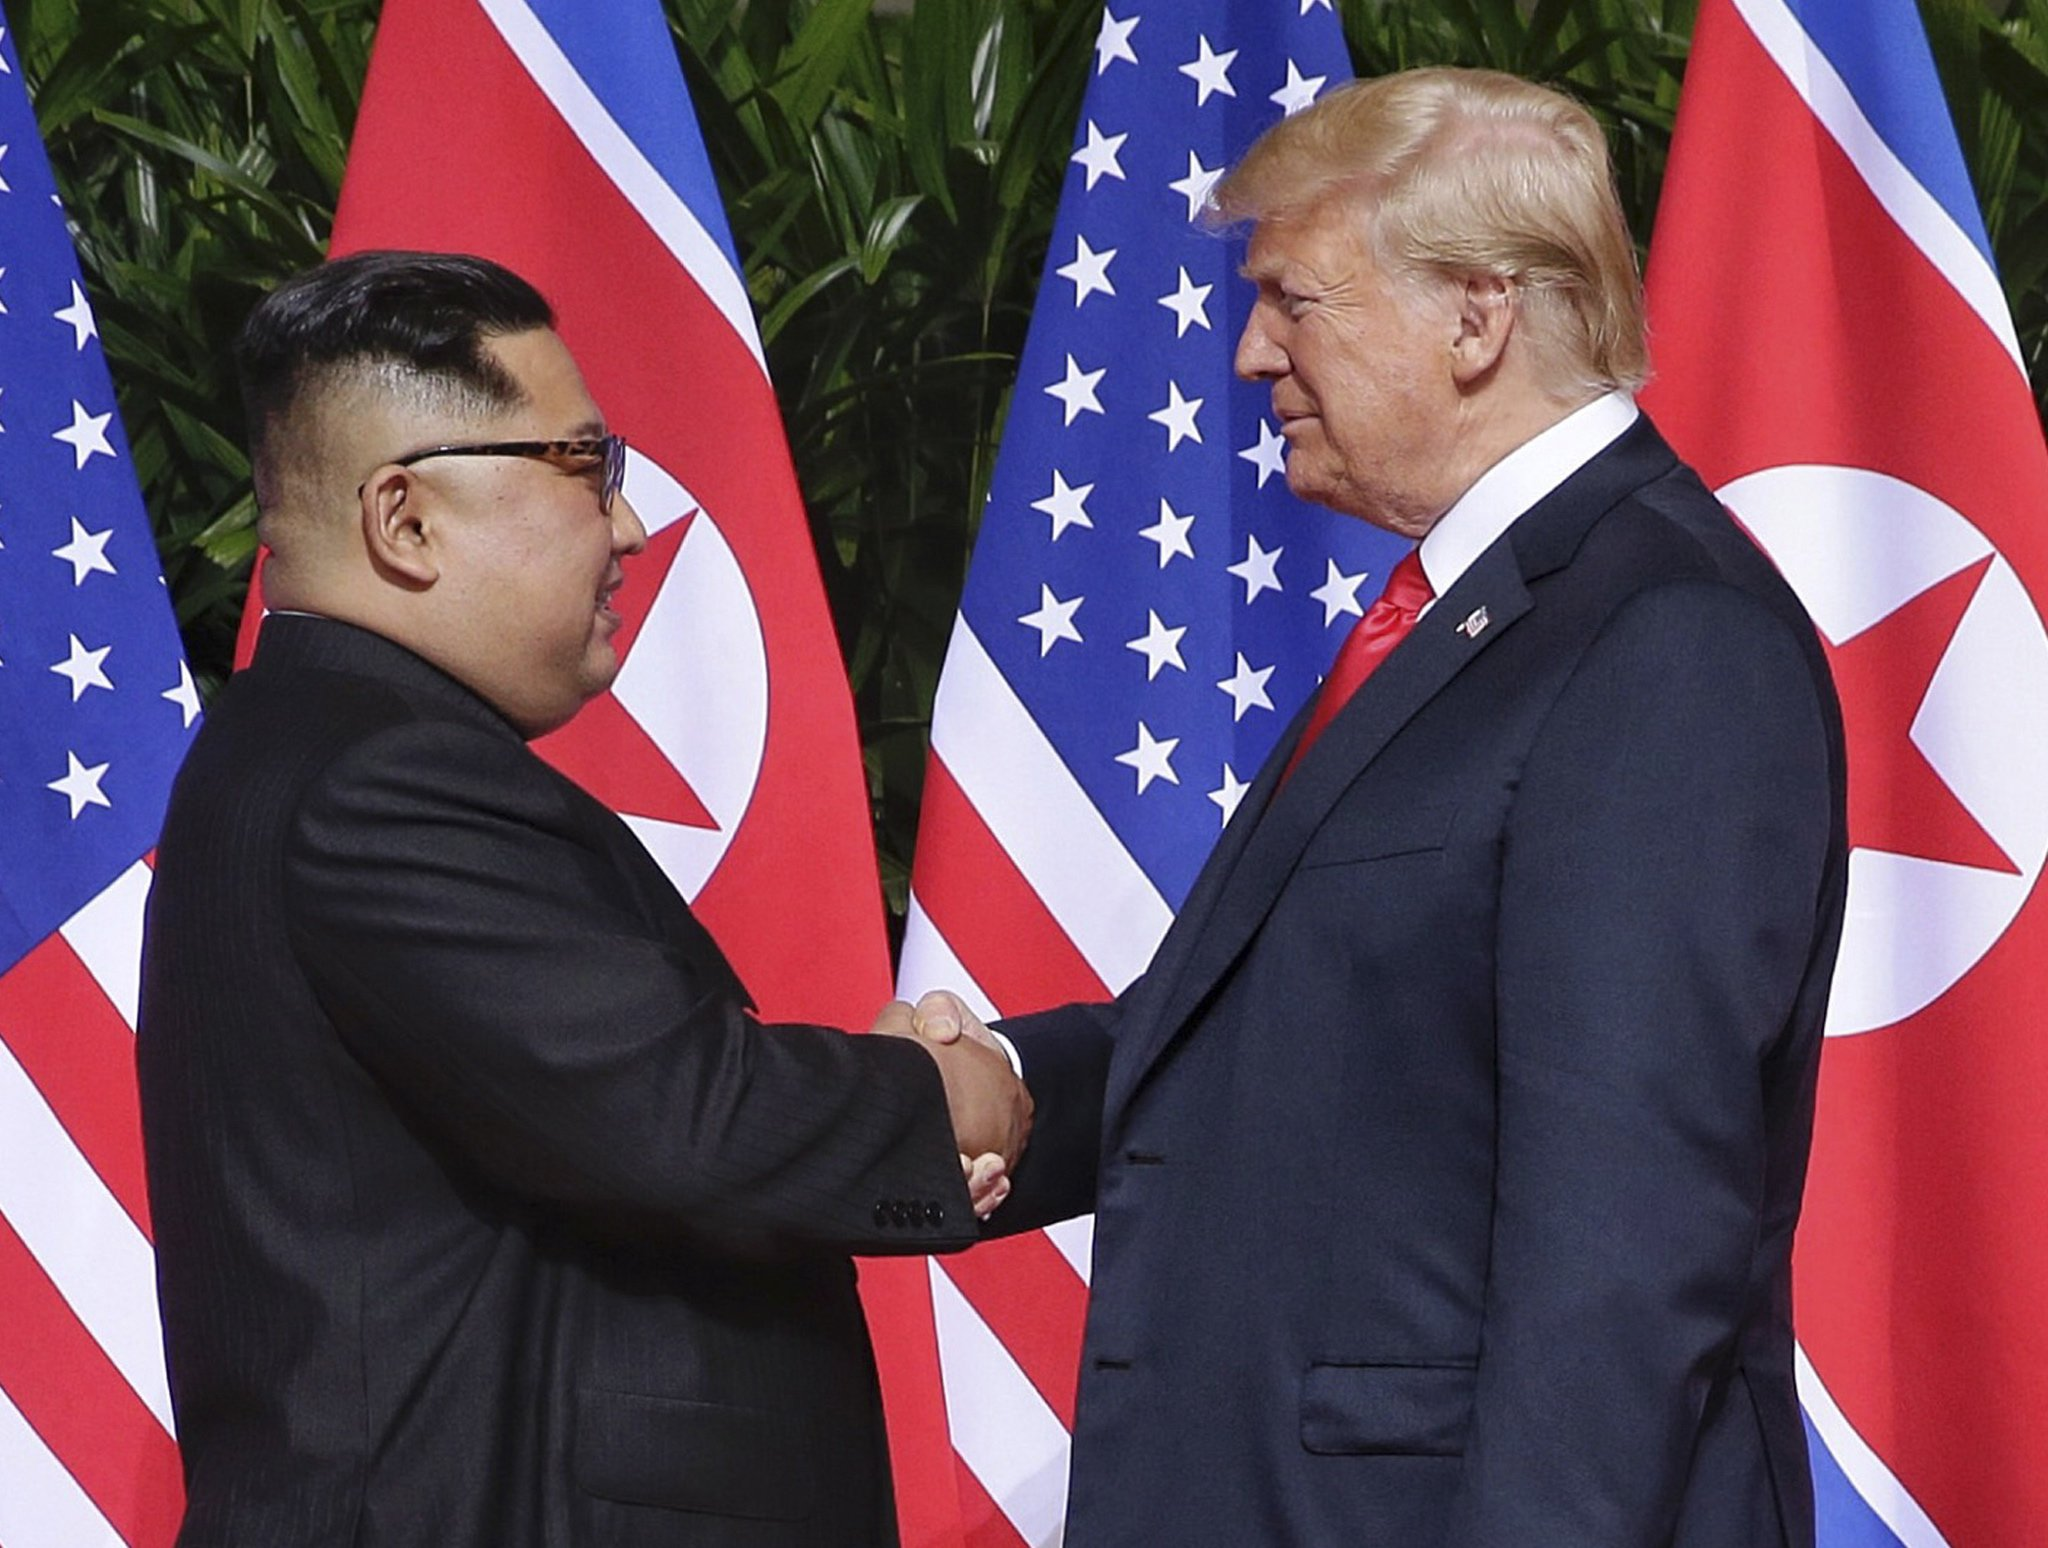 epa07011651 (FILE) - US President Donald J. Trump (R) and North Korean leader Kim Jong-un (L) shake hands at the start of a historic summit at the Capella Hotel on Sentosa Island, Singapore, 12 June 2018 (reissued 11 September 2018). North Korean leader Kim Jong-un has sent a letter to US President Donald Trump to propose a follow-up meeting to their Singapore summit that took place in June. EPA/KEVIN LIM / THE STRAITS TIMES / EDITORIAL USE ONLY EDITORIAL USE ONLY